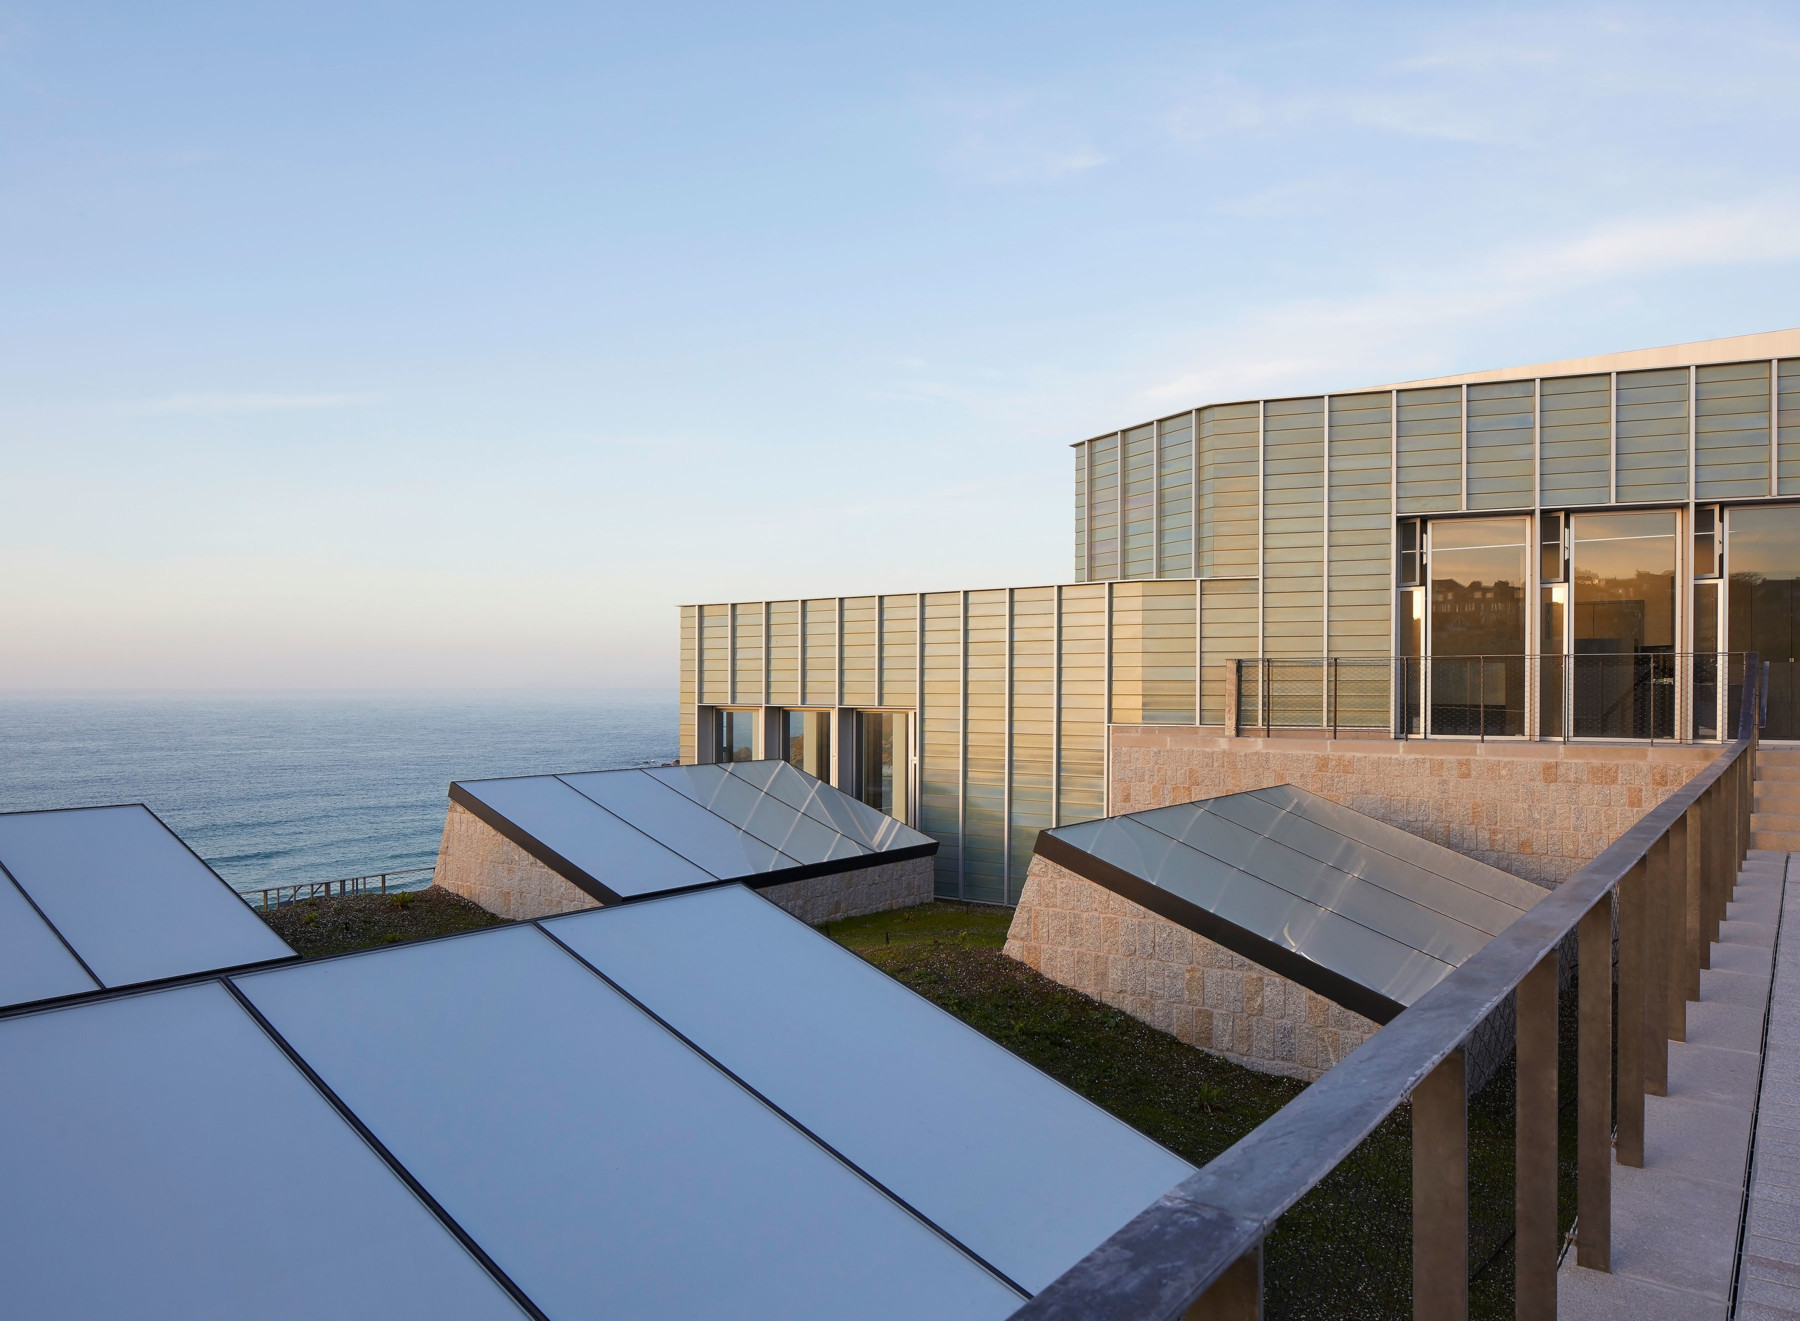 Jamie-Fobert-Architects Tate-St-Ives Cornwall Hufton+Crow faience rooflights